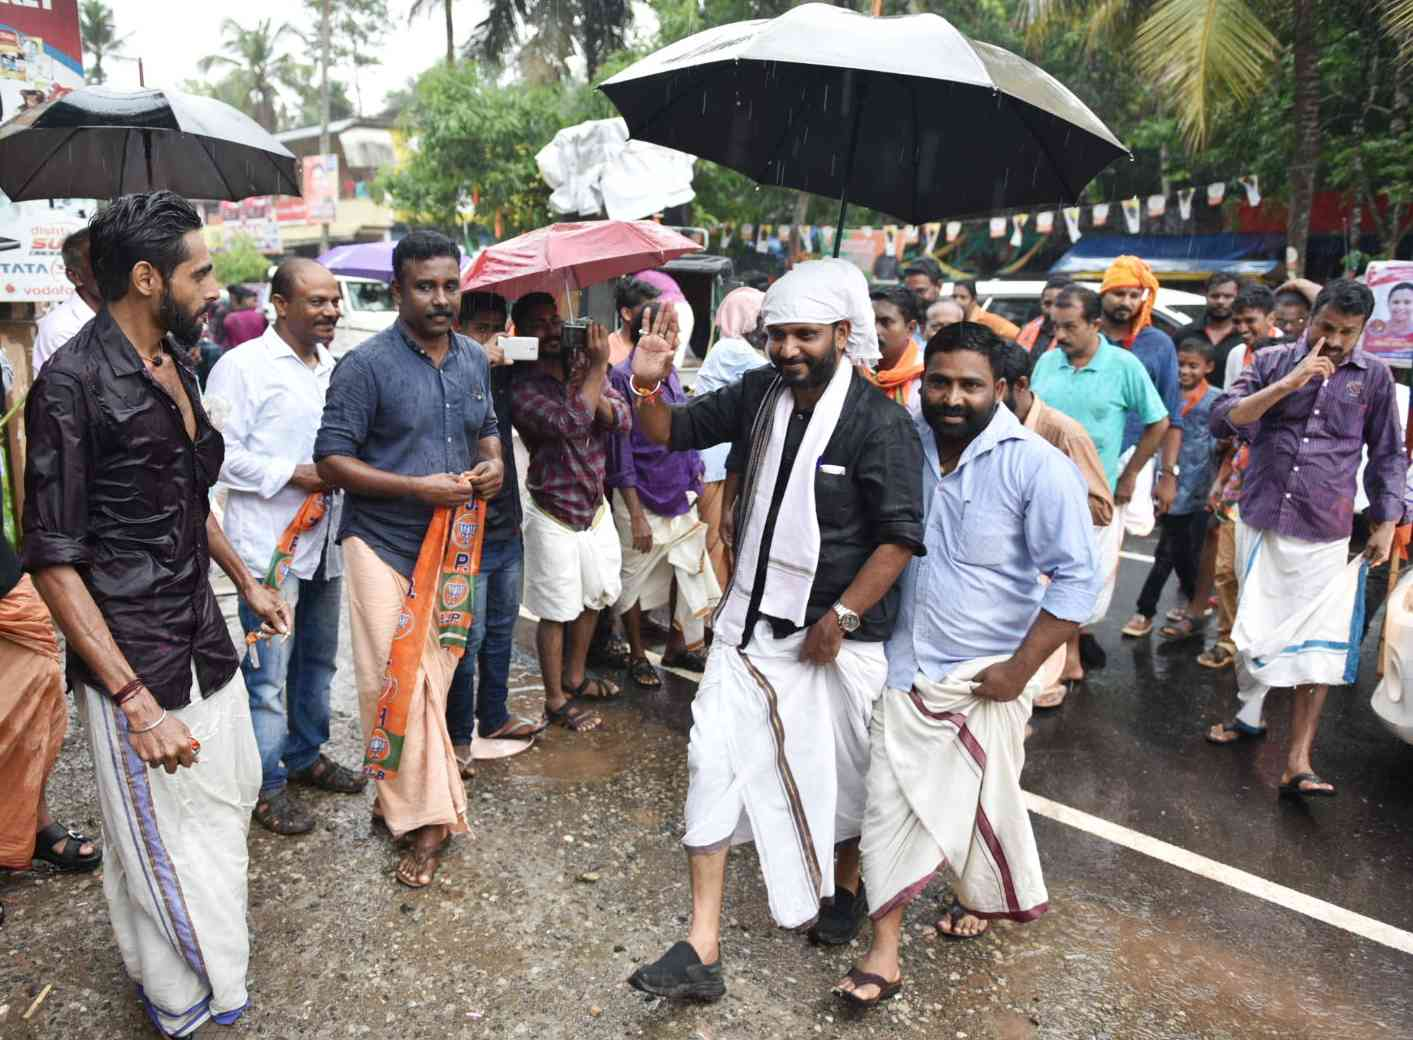 BJP candidate K Surendran campaigns in Pathanamthitta. (Photo: By special arrangement).